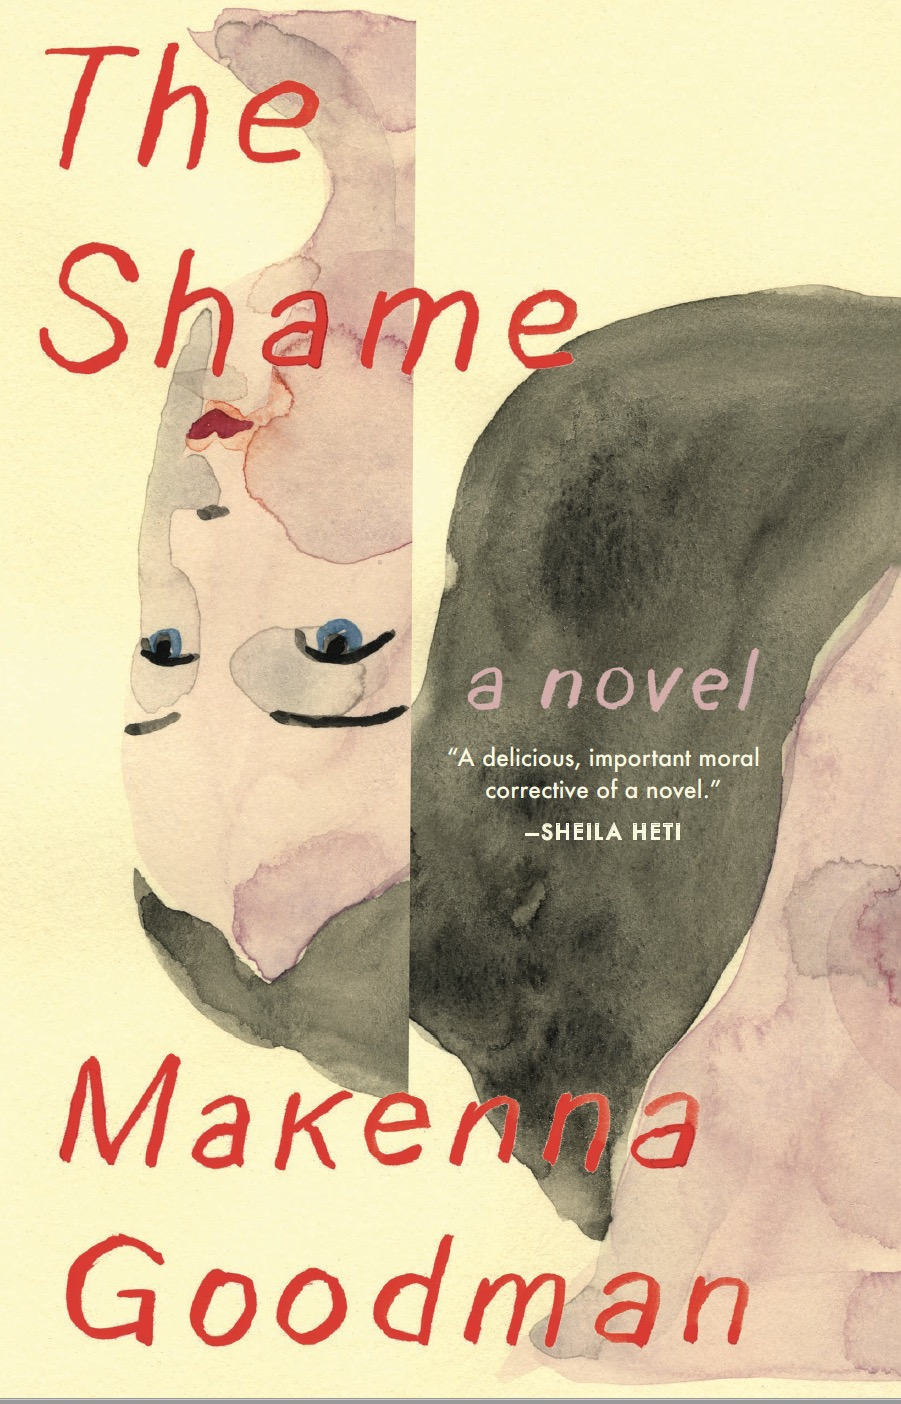 The Shame cover